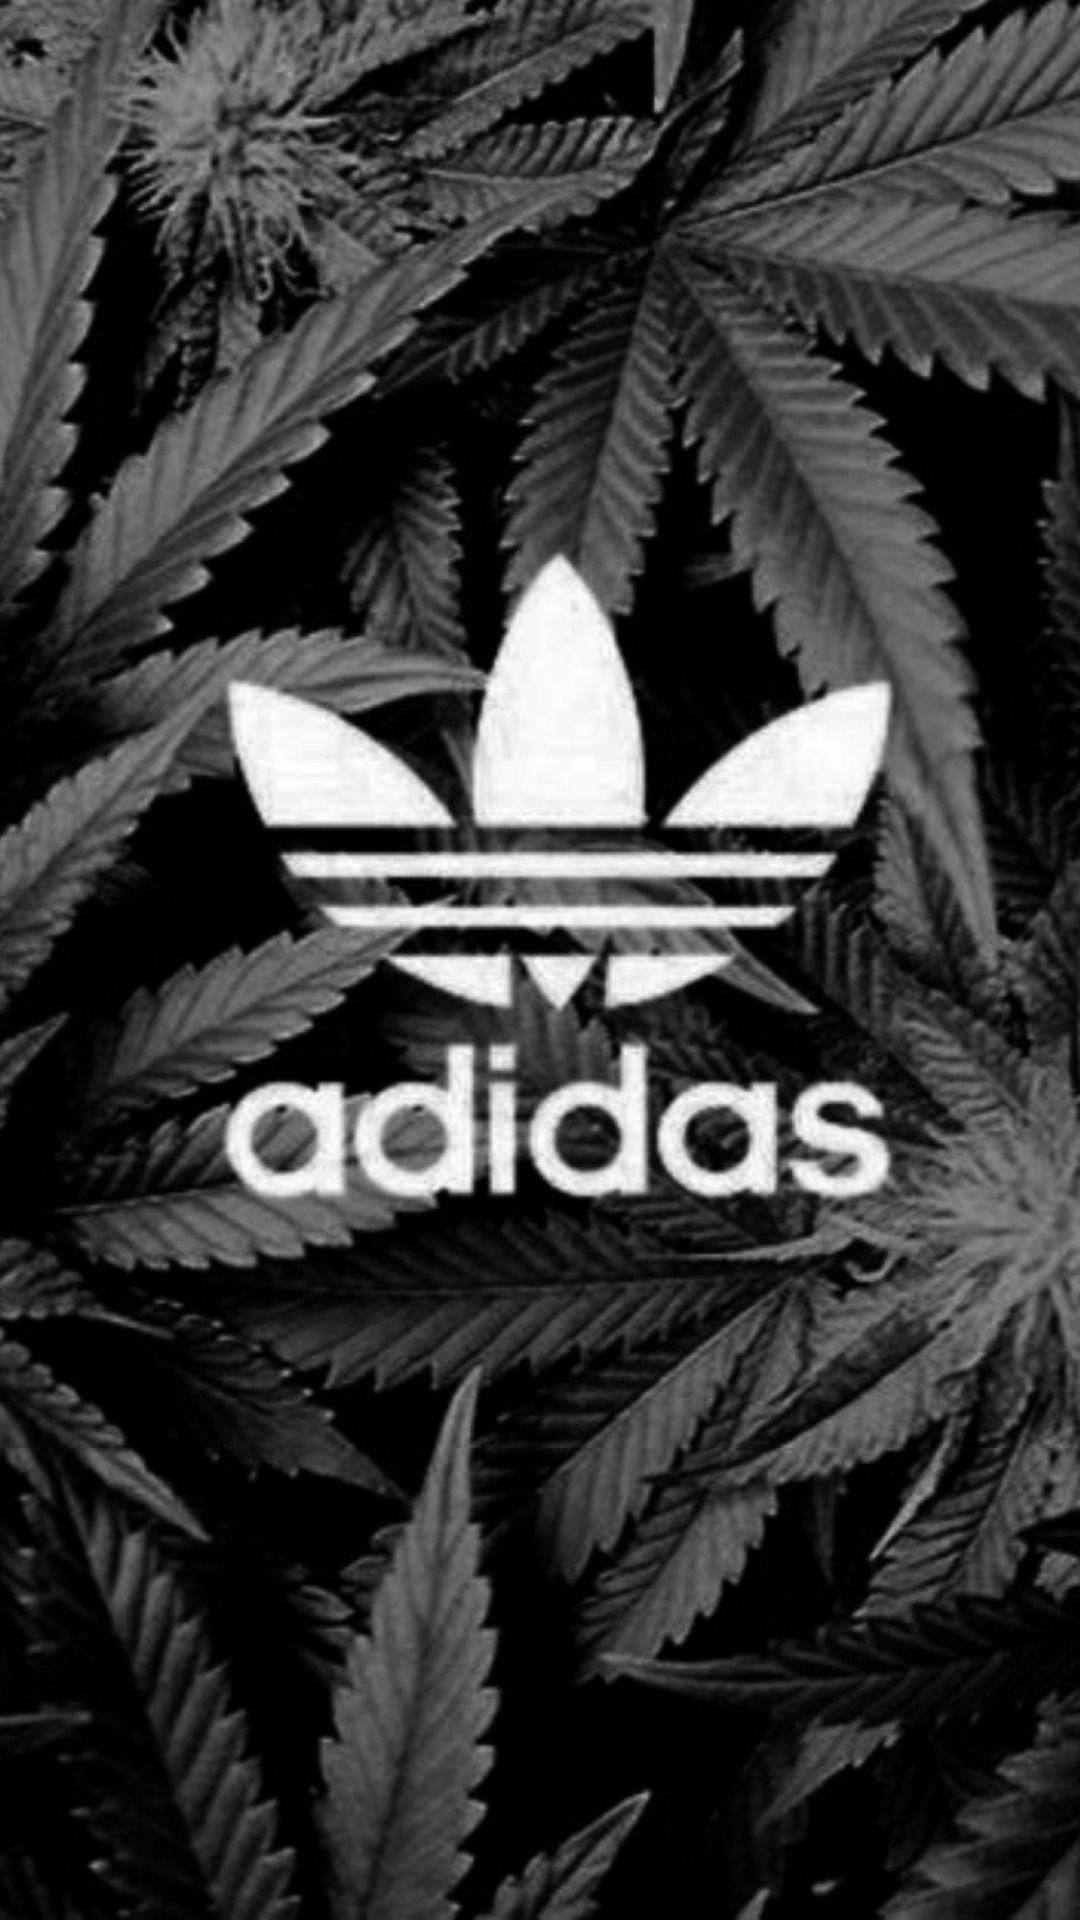 Iphone 6 wallpaper tumblr black and white - Iphone Wallpapers Iphone 6 Adidas Wallpaper 2